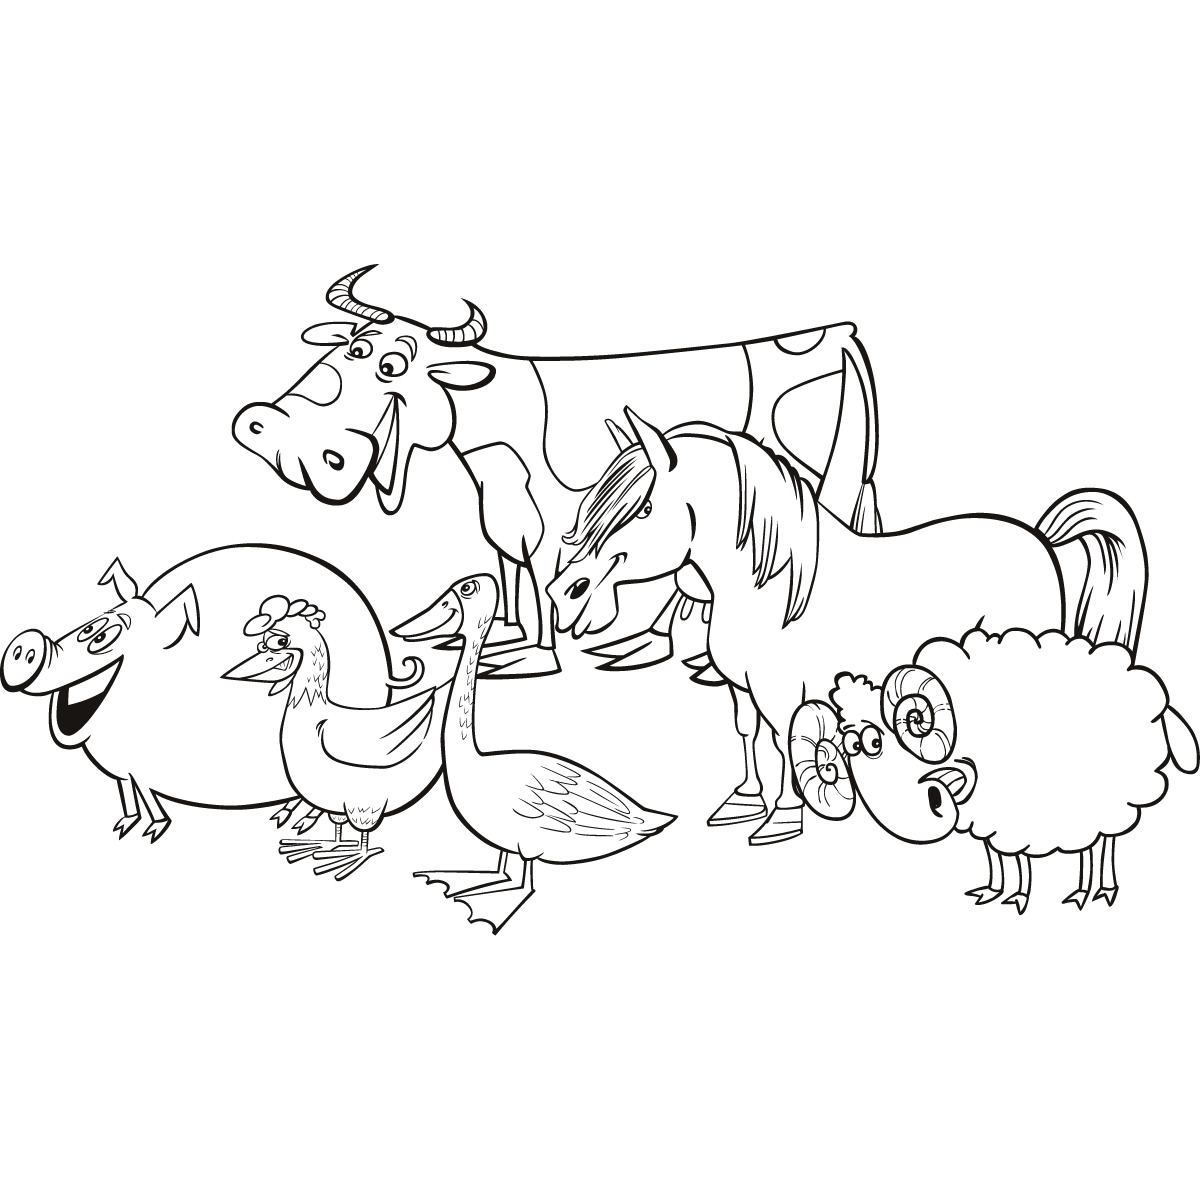 Line Drawings Of Farm Animals : Kids animal farm yard animals wall art sticker decal